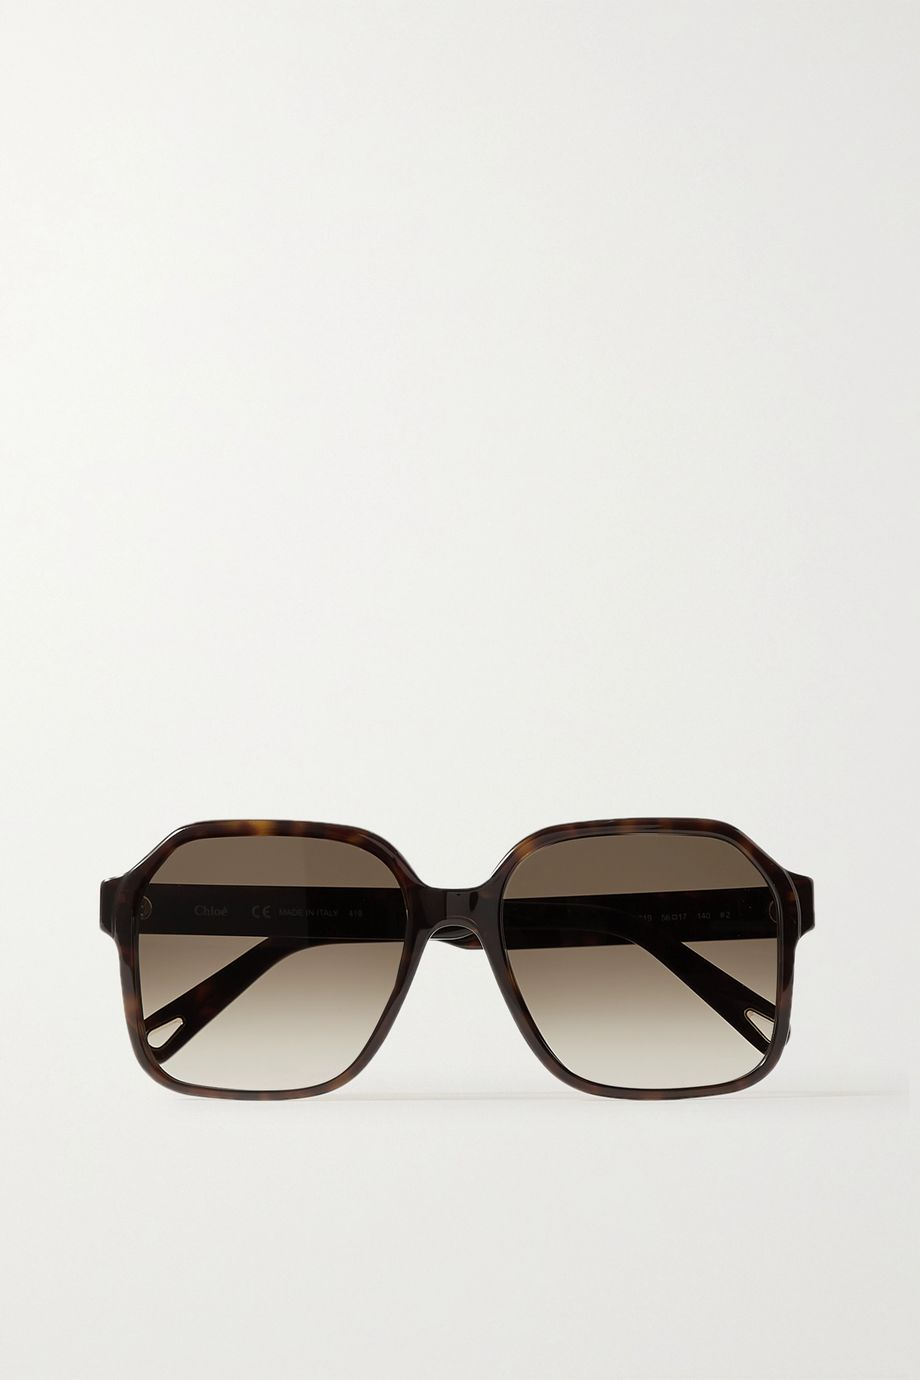 Chloé Willow square-frame tortoiseshell acetate sunglasses